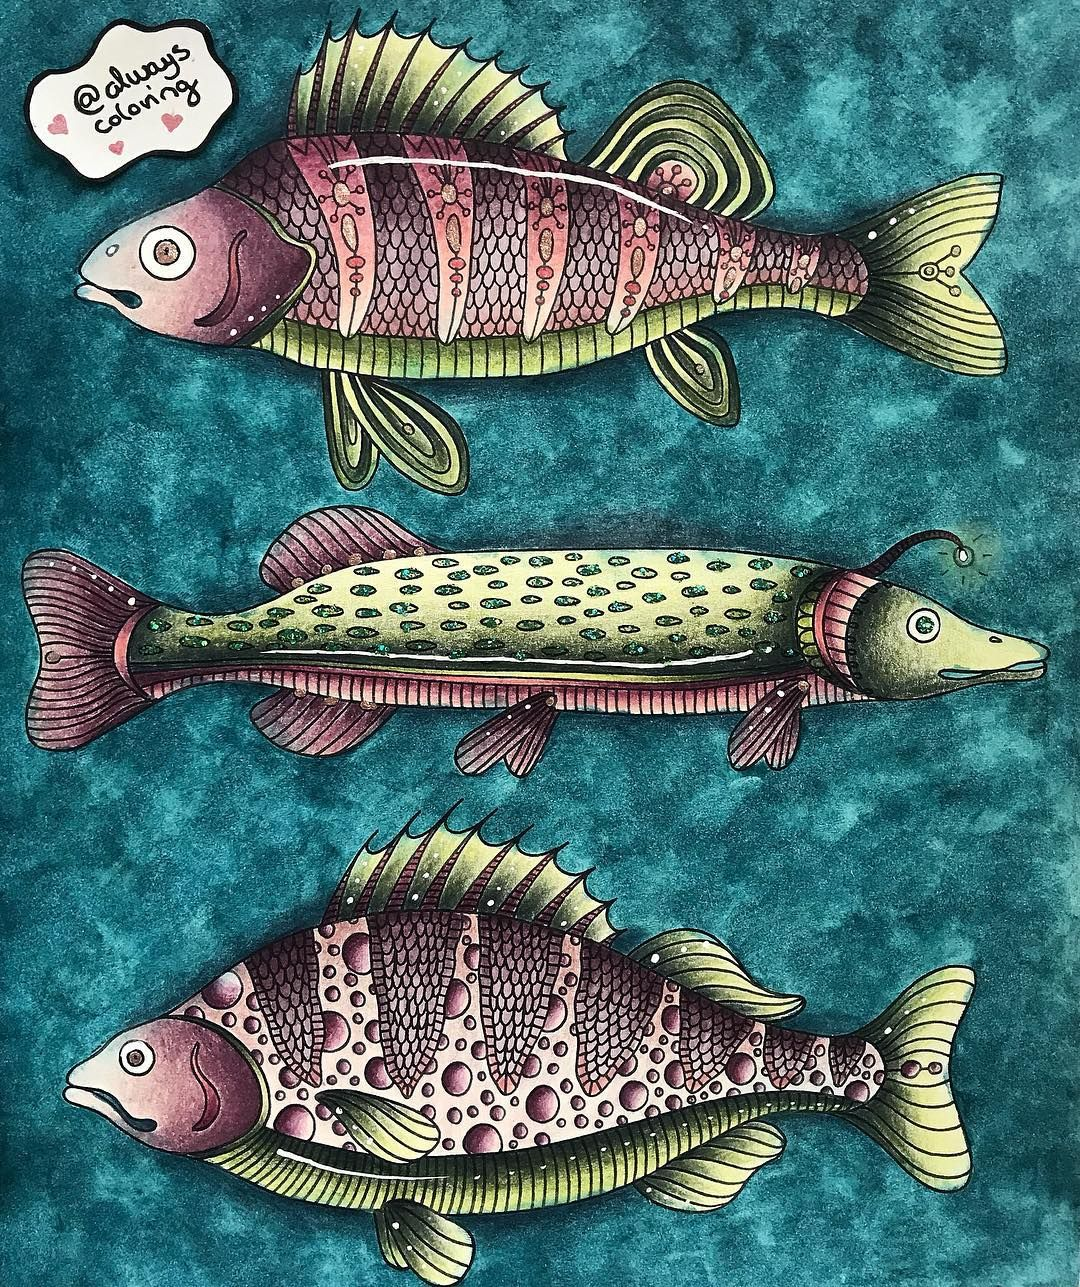 437 Likes 36 Comments Katrine Alwayscoloring On Instagram This Is On Youtube I Just Love How My Fish Turned Out They Kleurboek Kleuren Kleurplaten